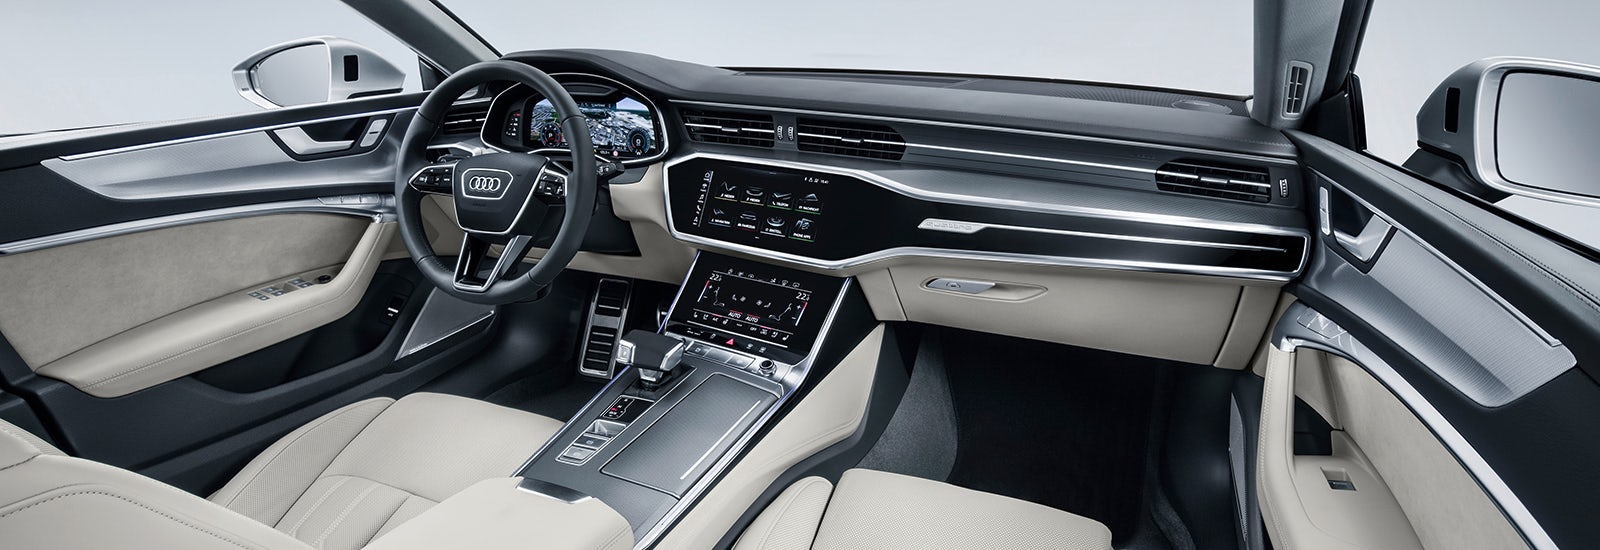 The A6 Will Feature A Lot Of Tech And Materials From A7 Shown Here